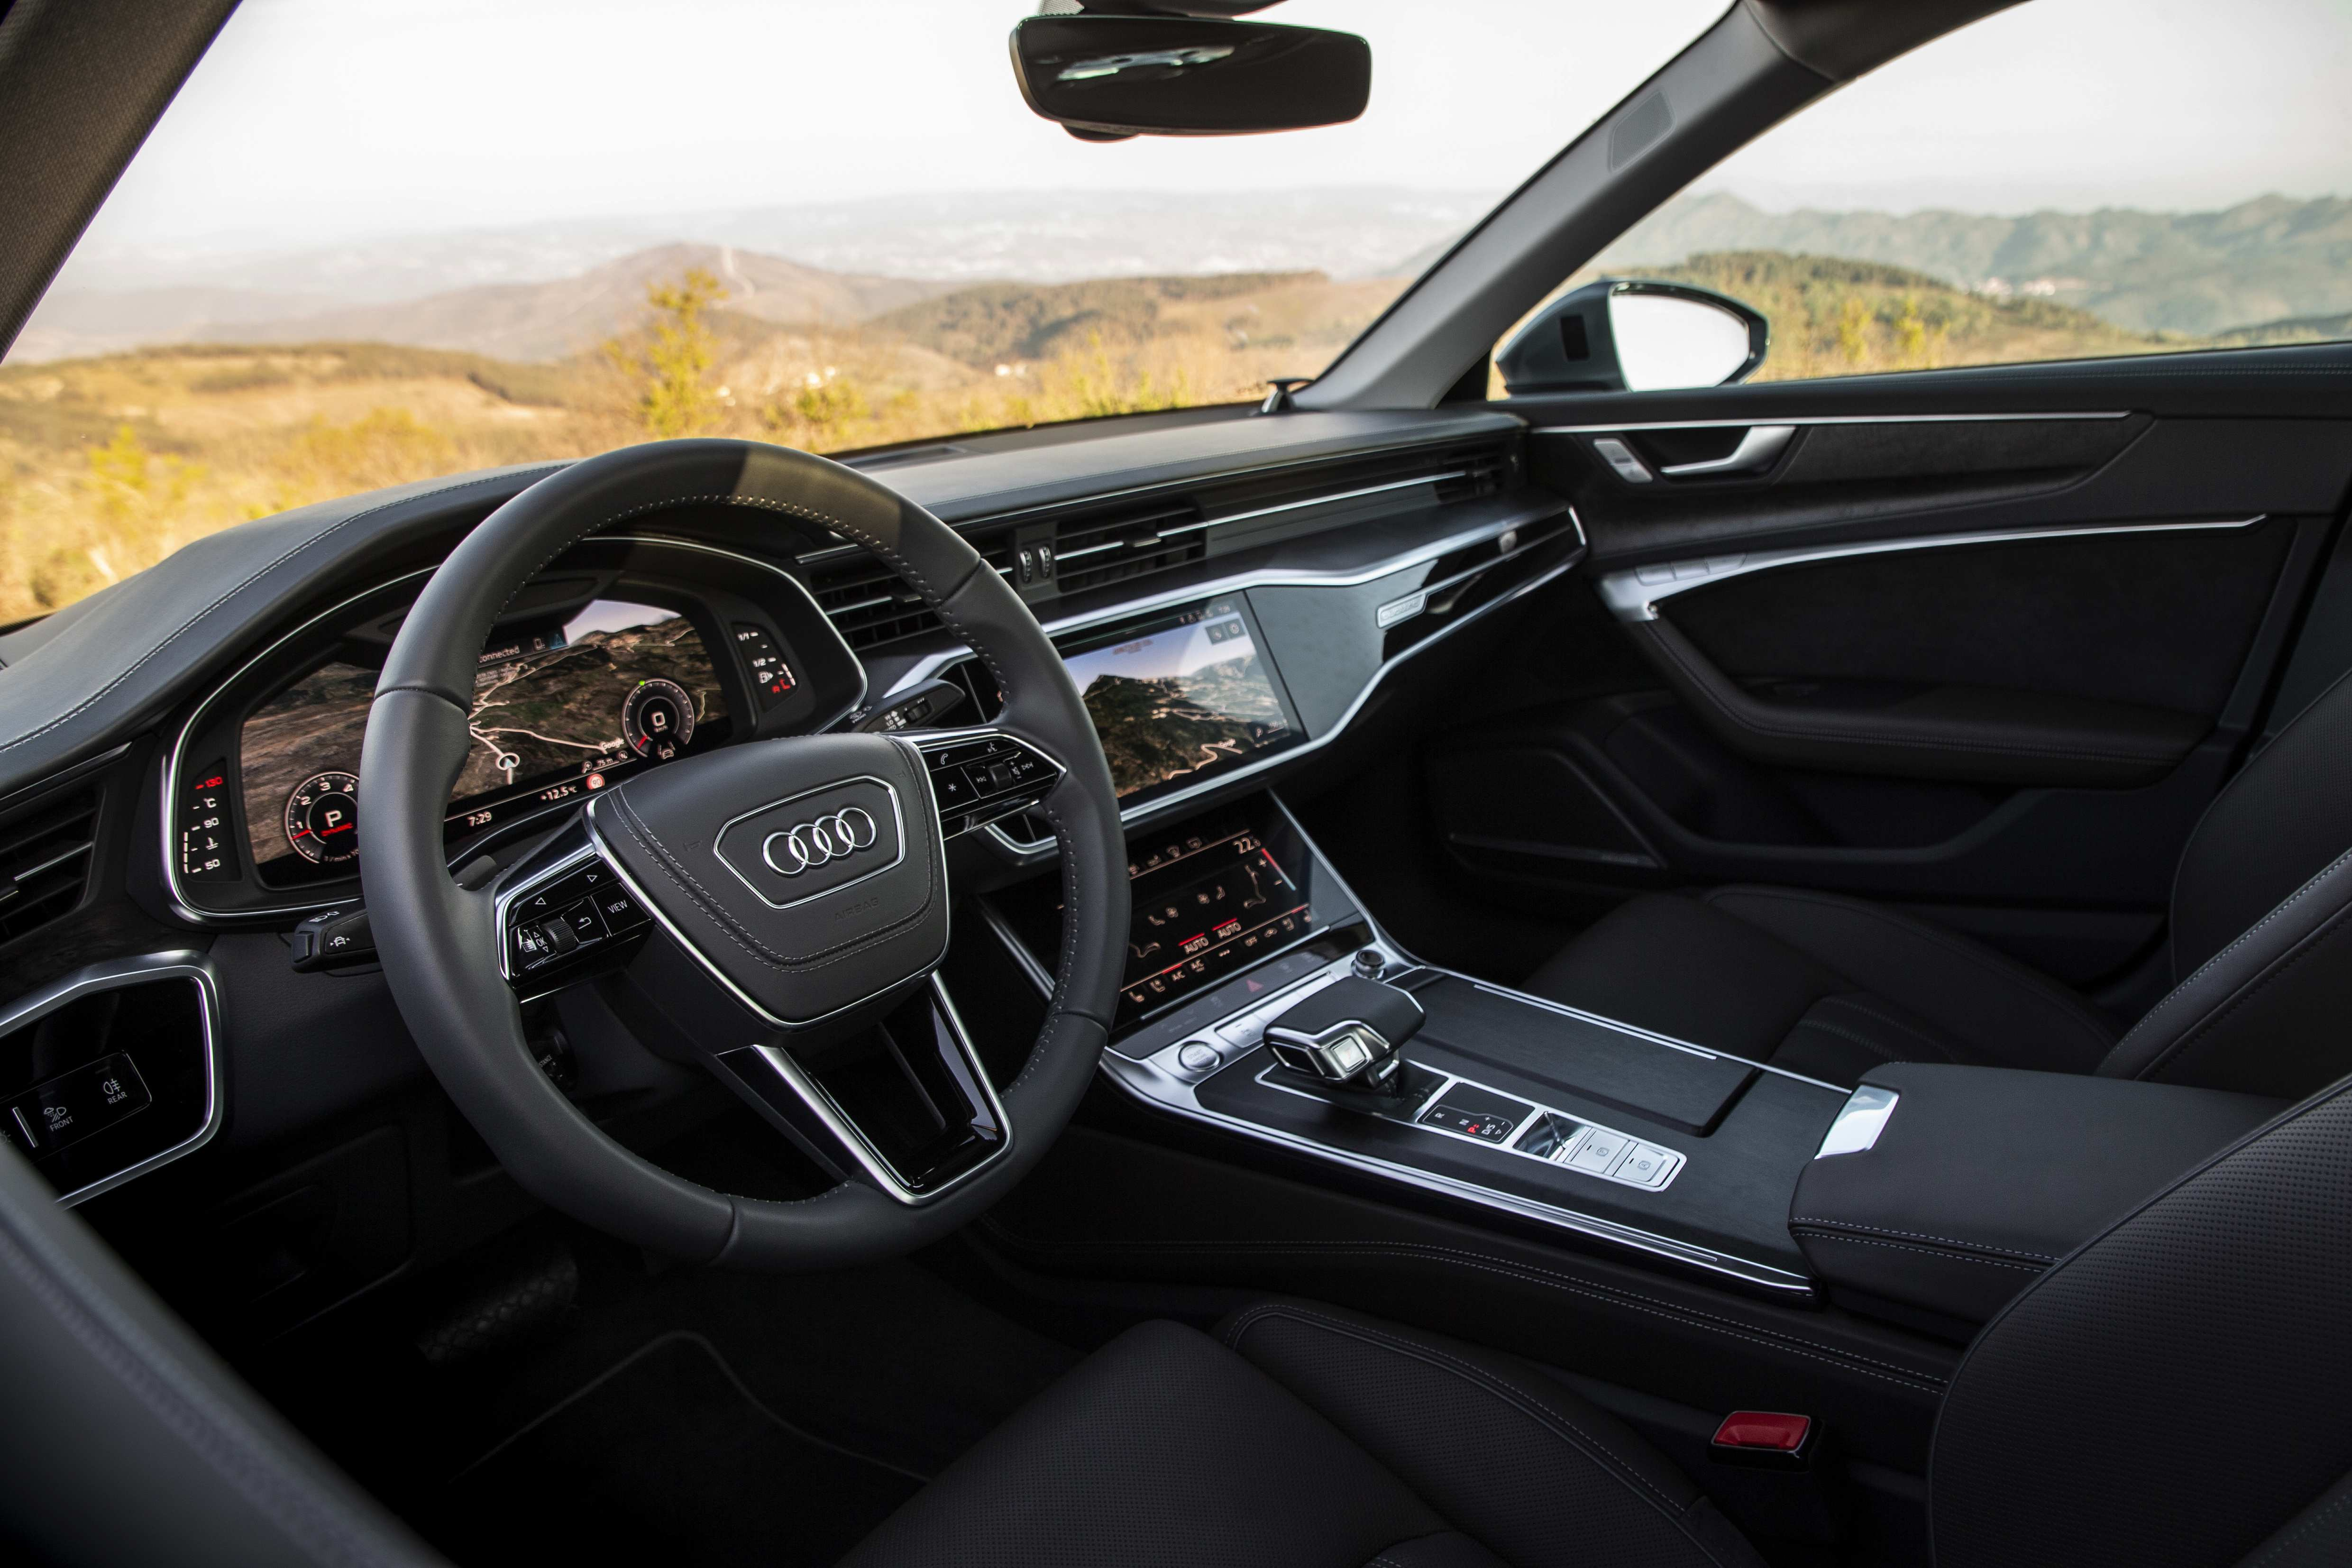 68 New 2019 Audi A6 Release Date Usa Prices by 2019 Audi A6 Release Date Usa